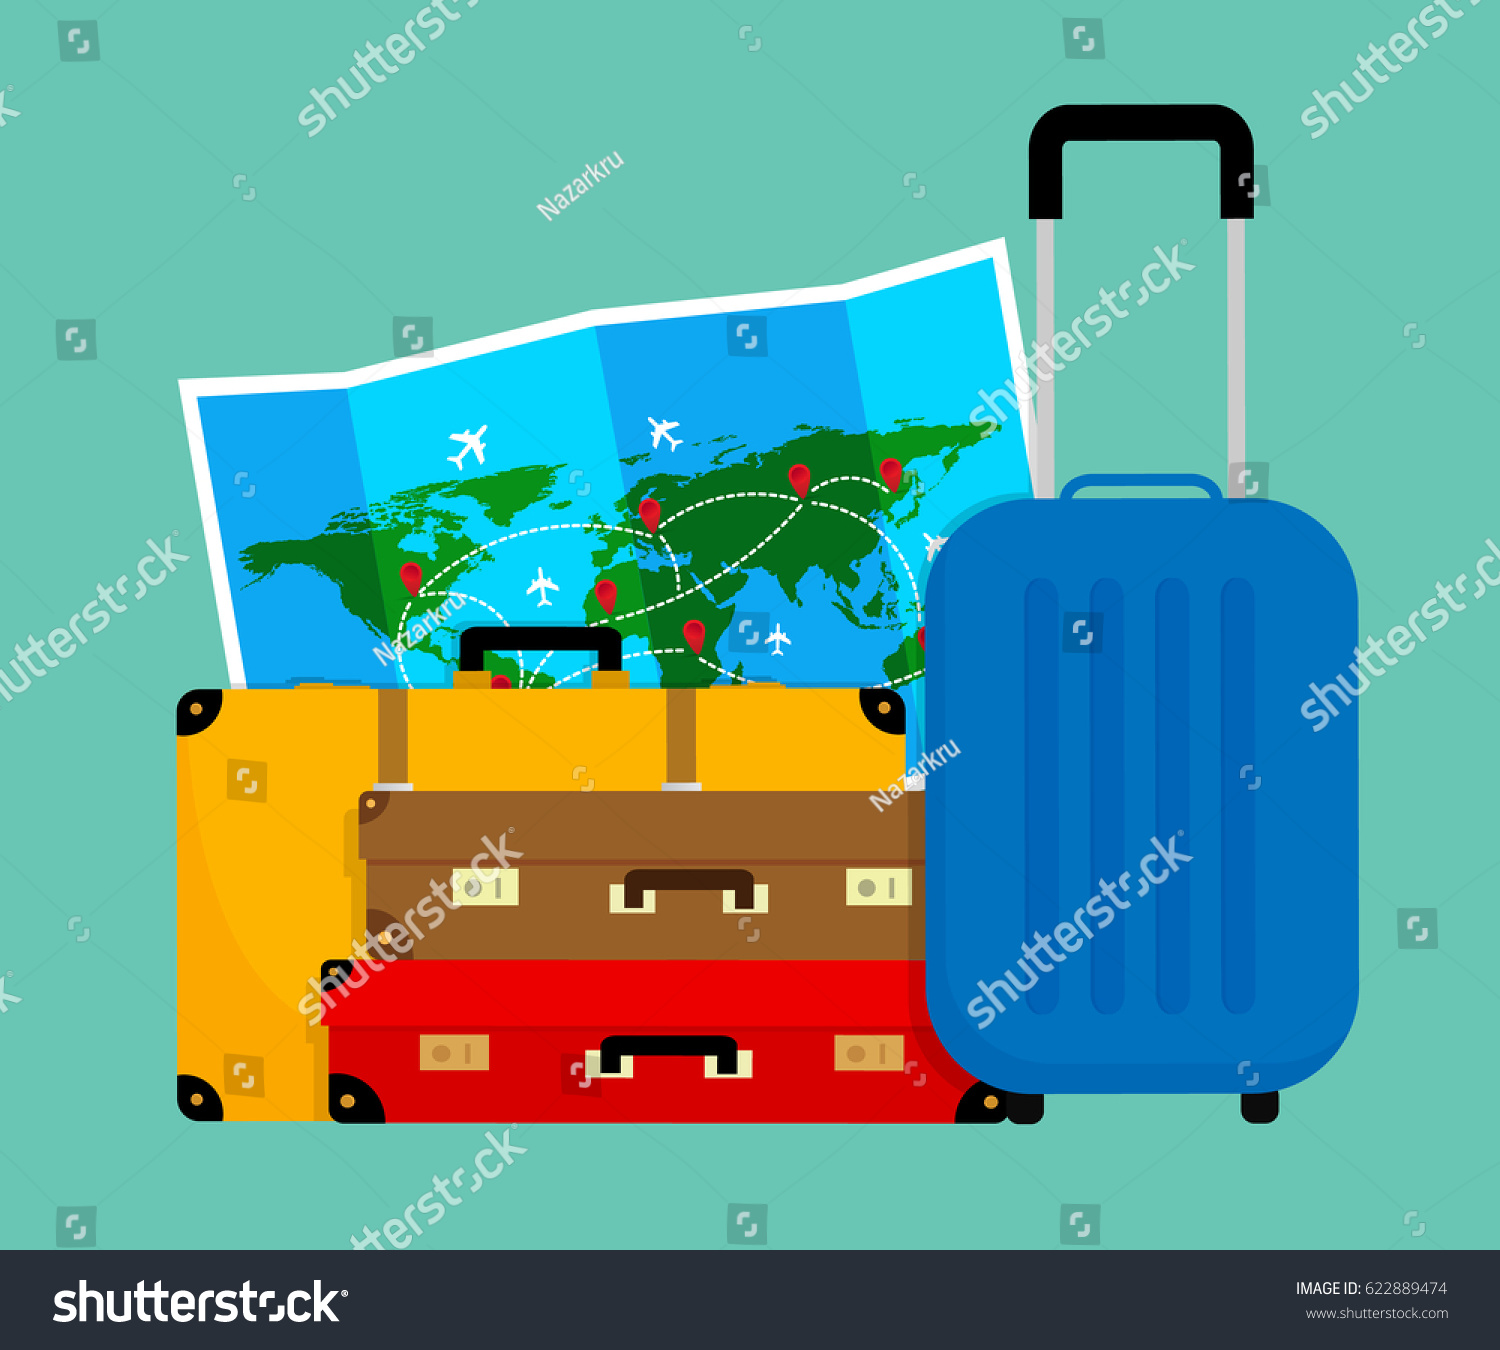 Colorful travel bags folded world map vectores en stock 622889474 colorful travel bags and folded world map vector illustration flat design gumiabroncs Choice Image